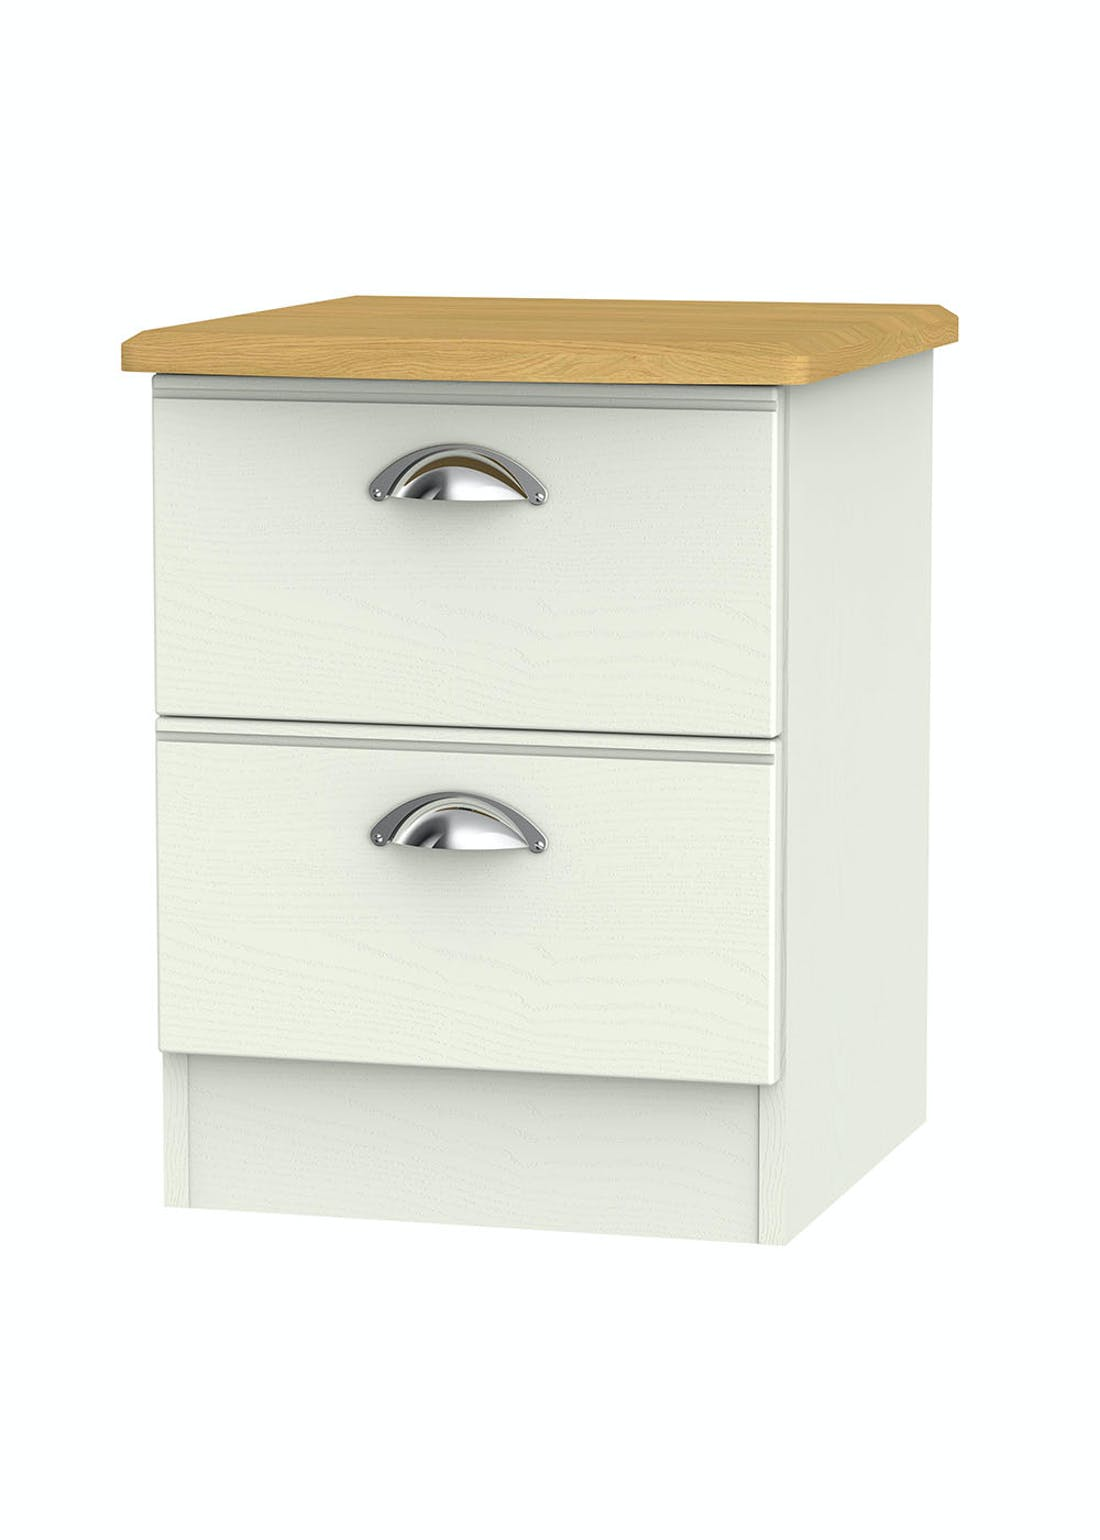 Swift Stamford 2 Drawer Bedside Table (50.5cm x 39.5cm x 41.5cm)